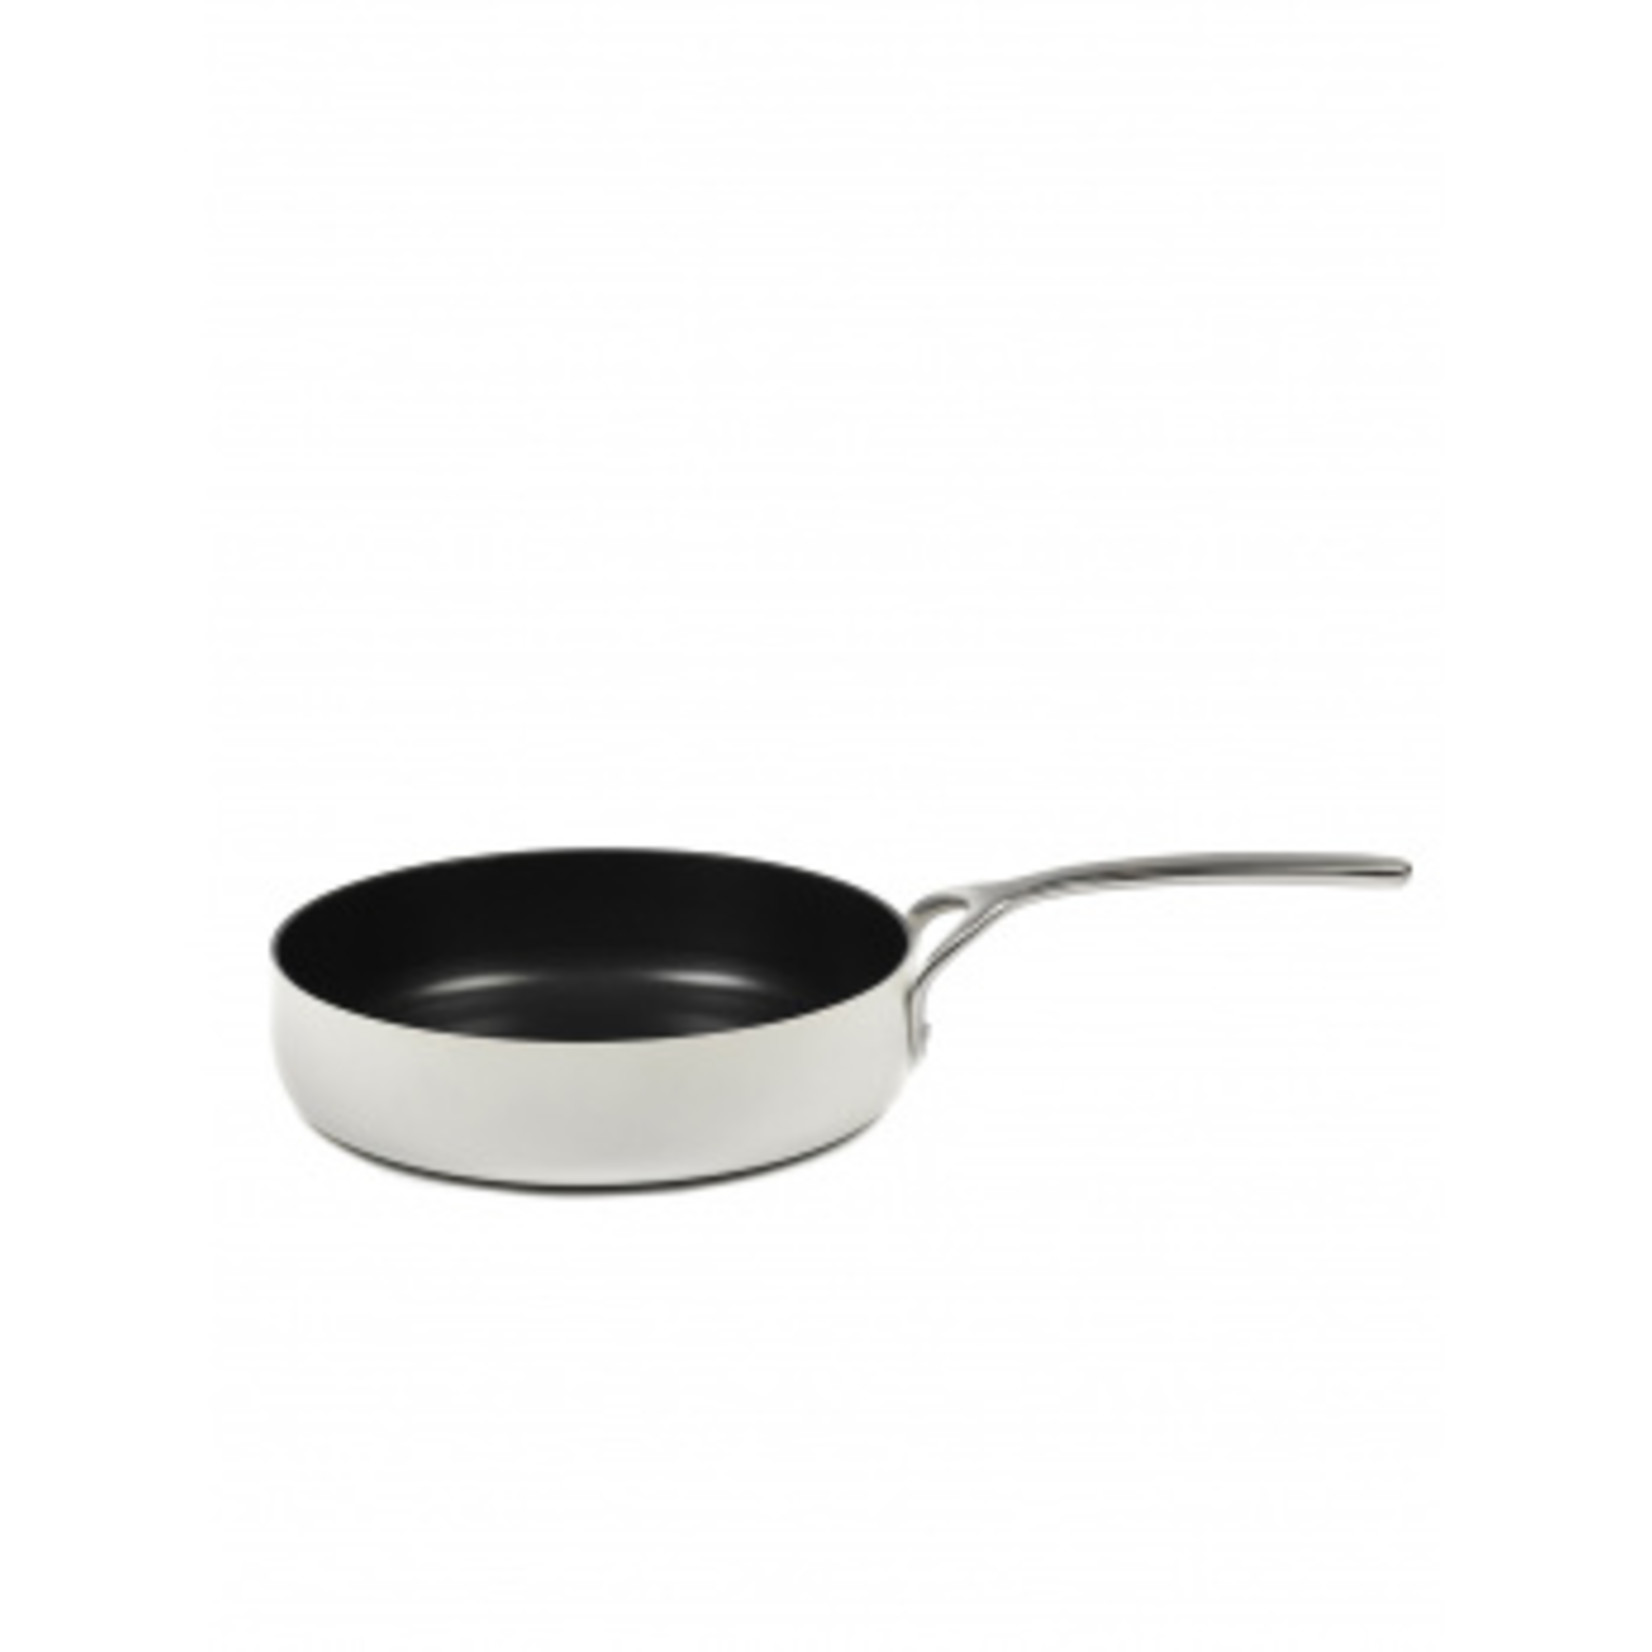 Pascale Naessens collection Pure Anti-kleef braadpan Aluminium 4,1 l